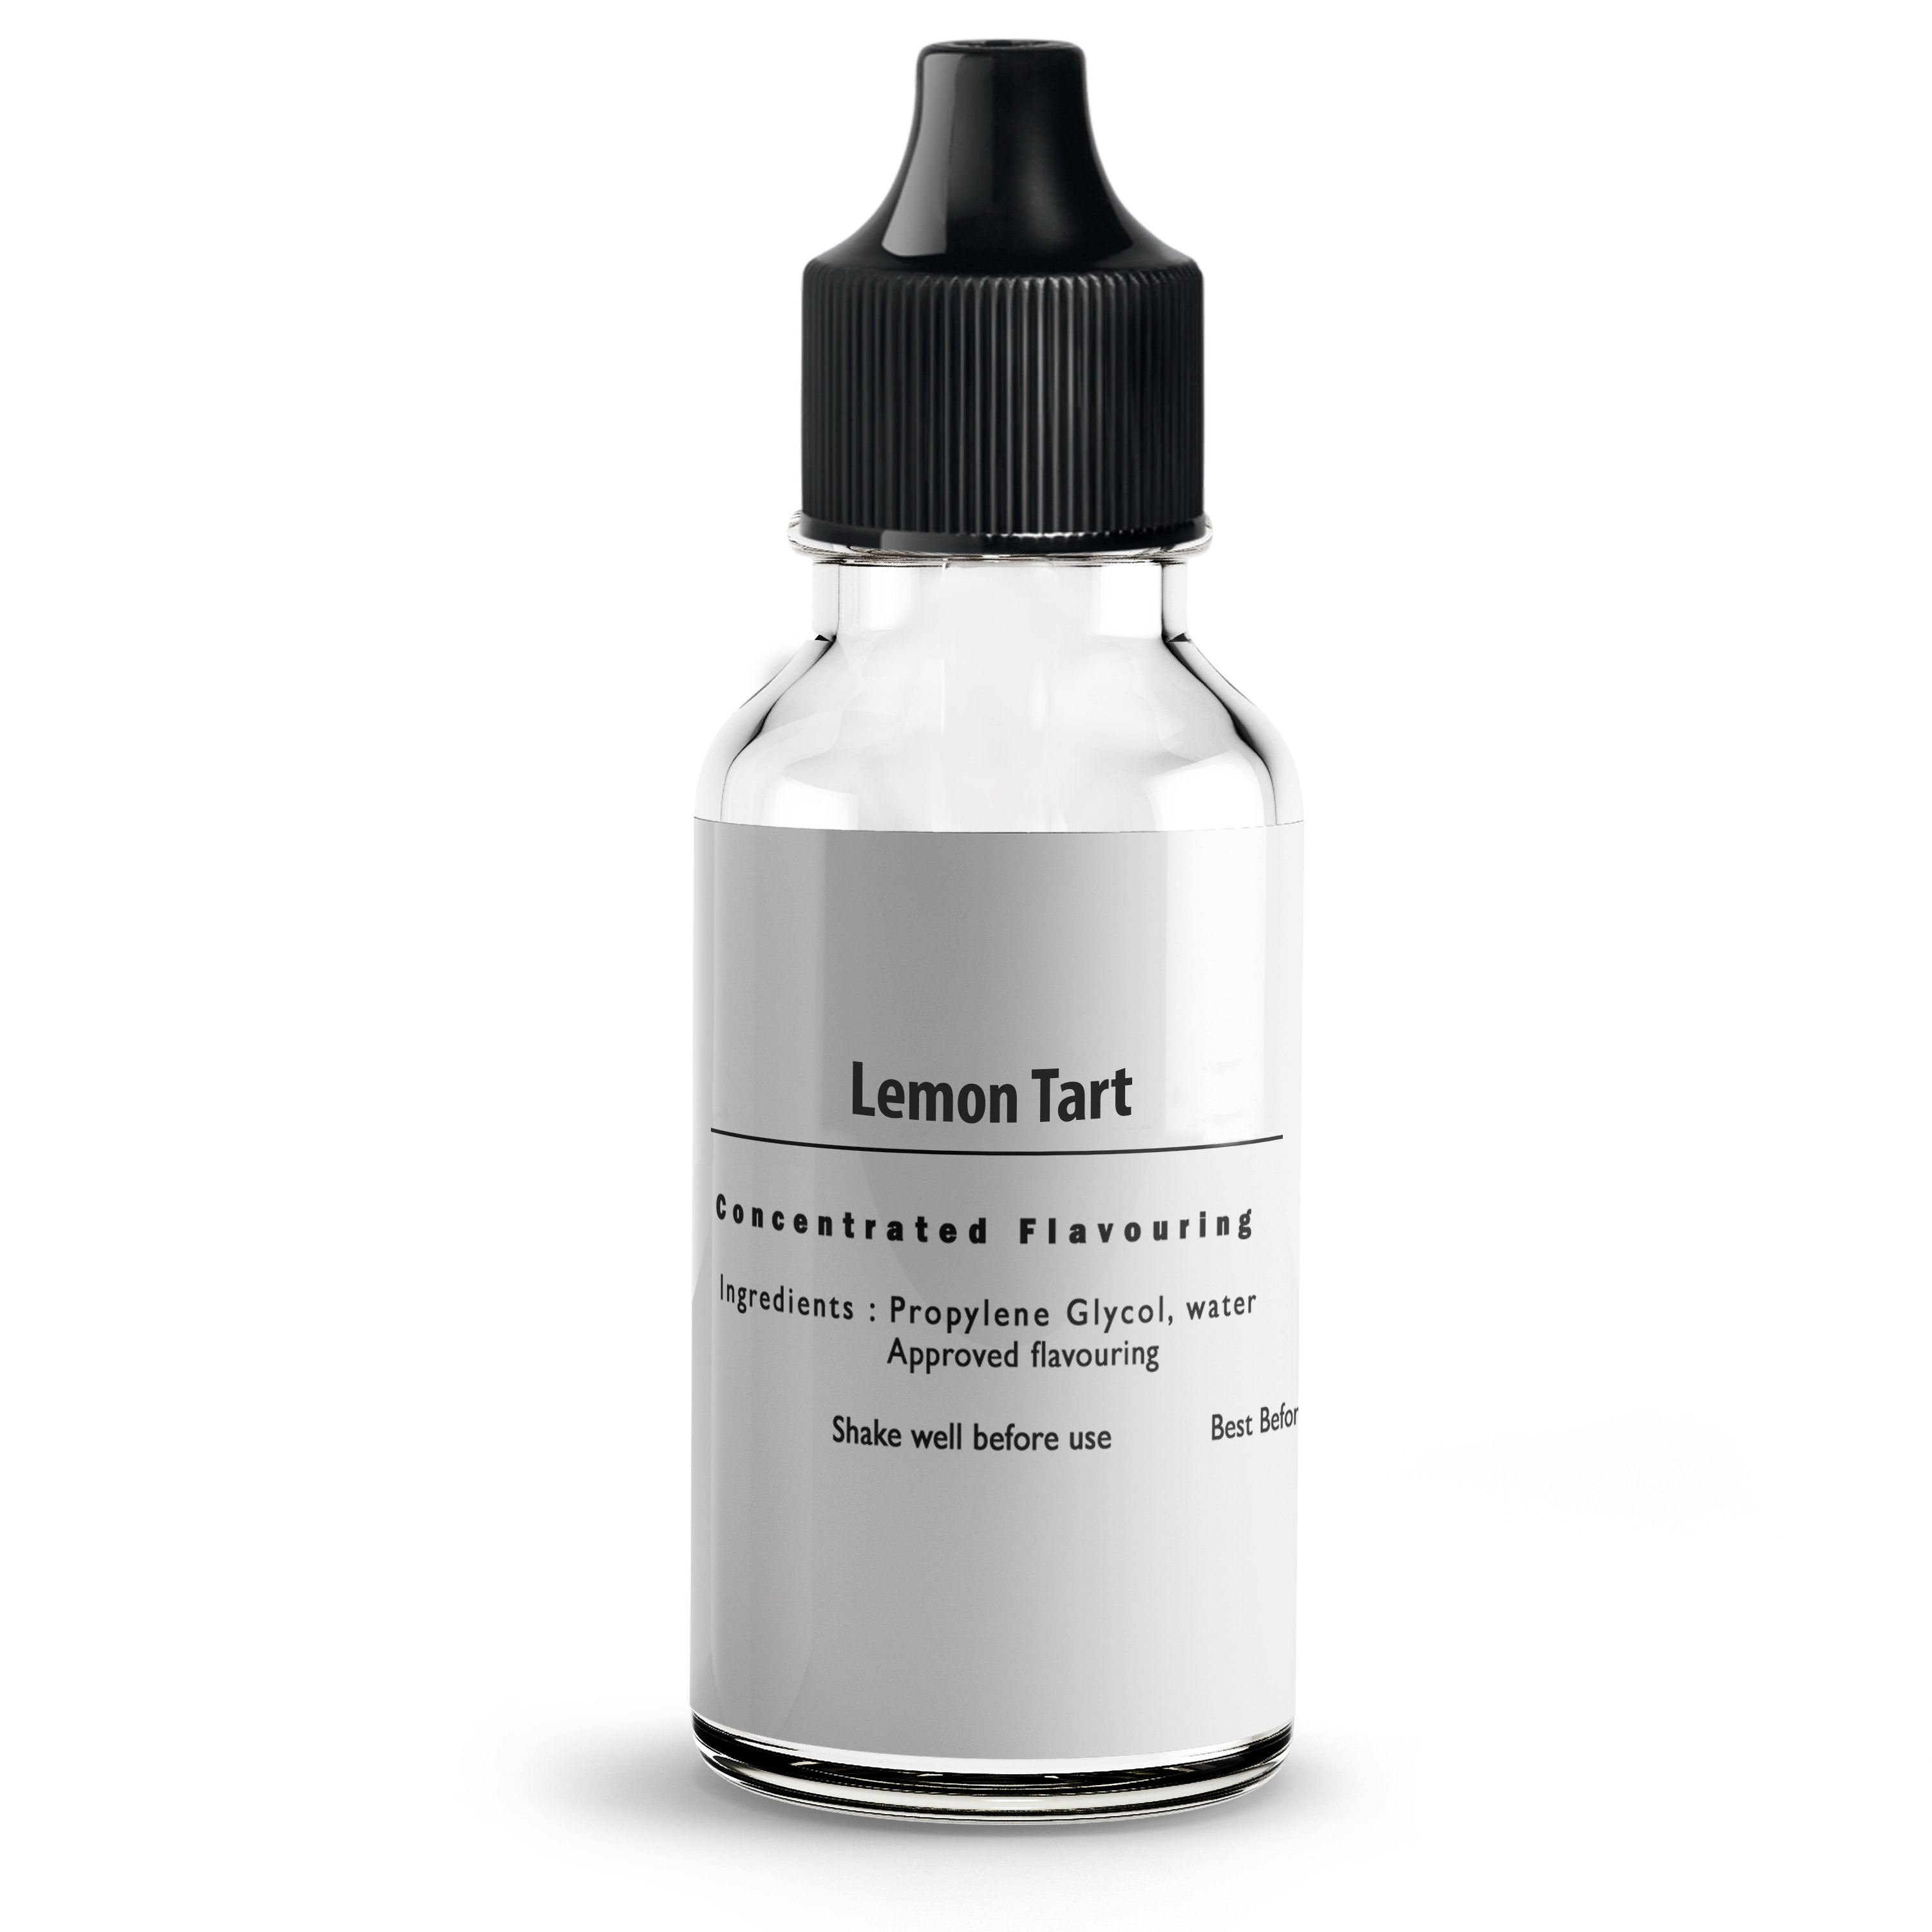 Lemon Tart flavour Concentrate for E liquids